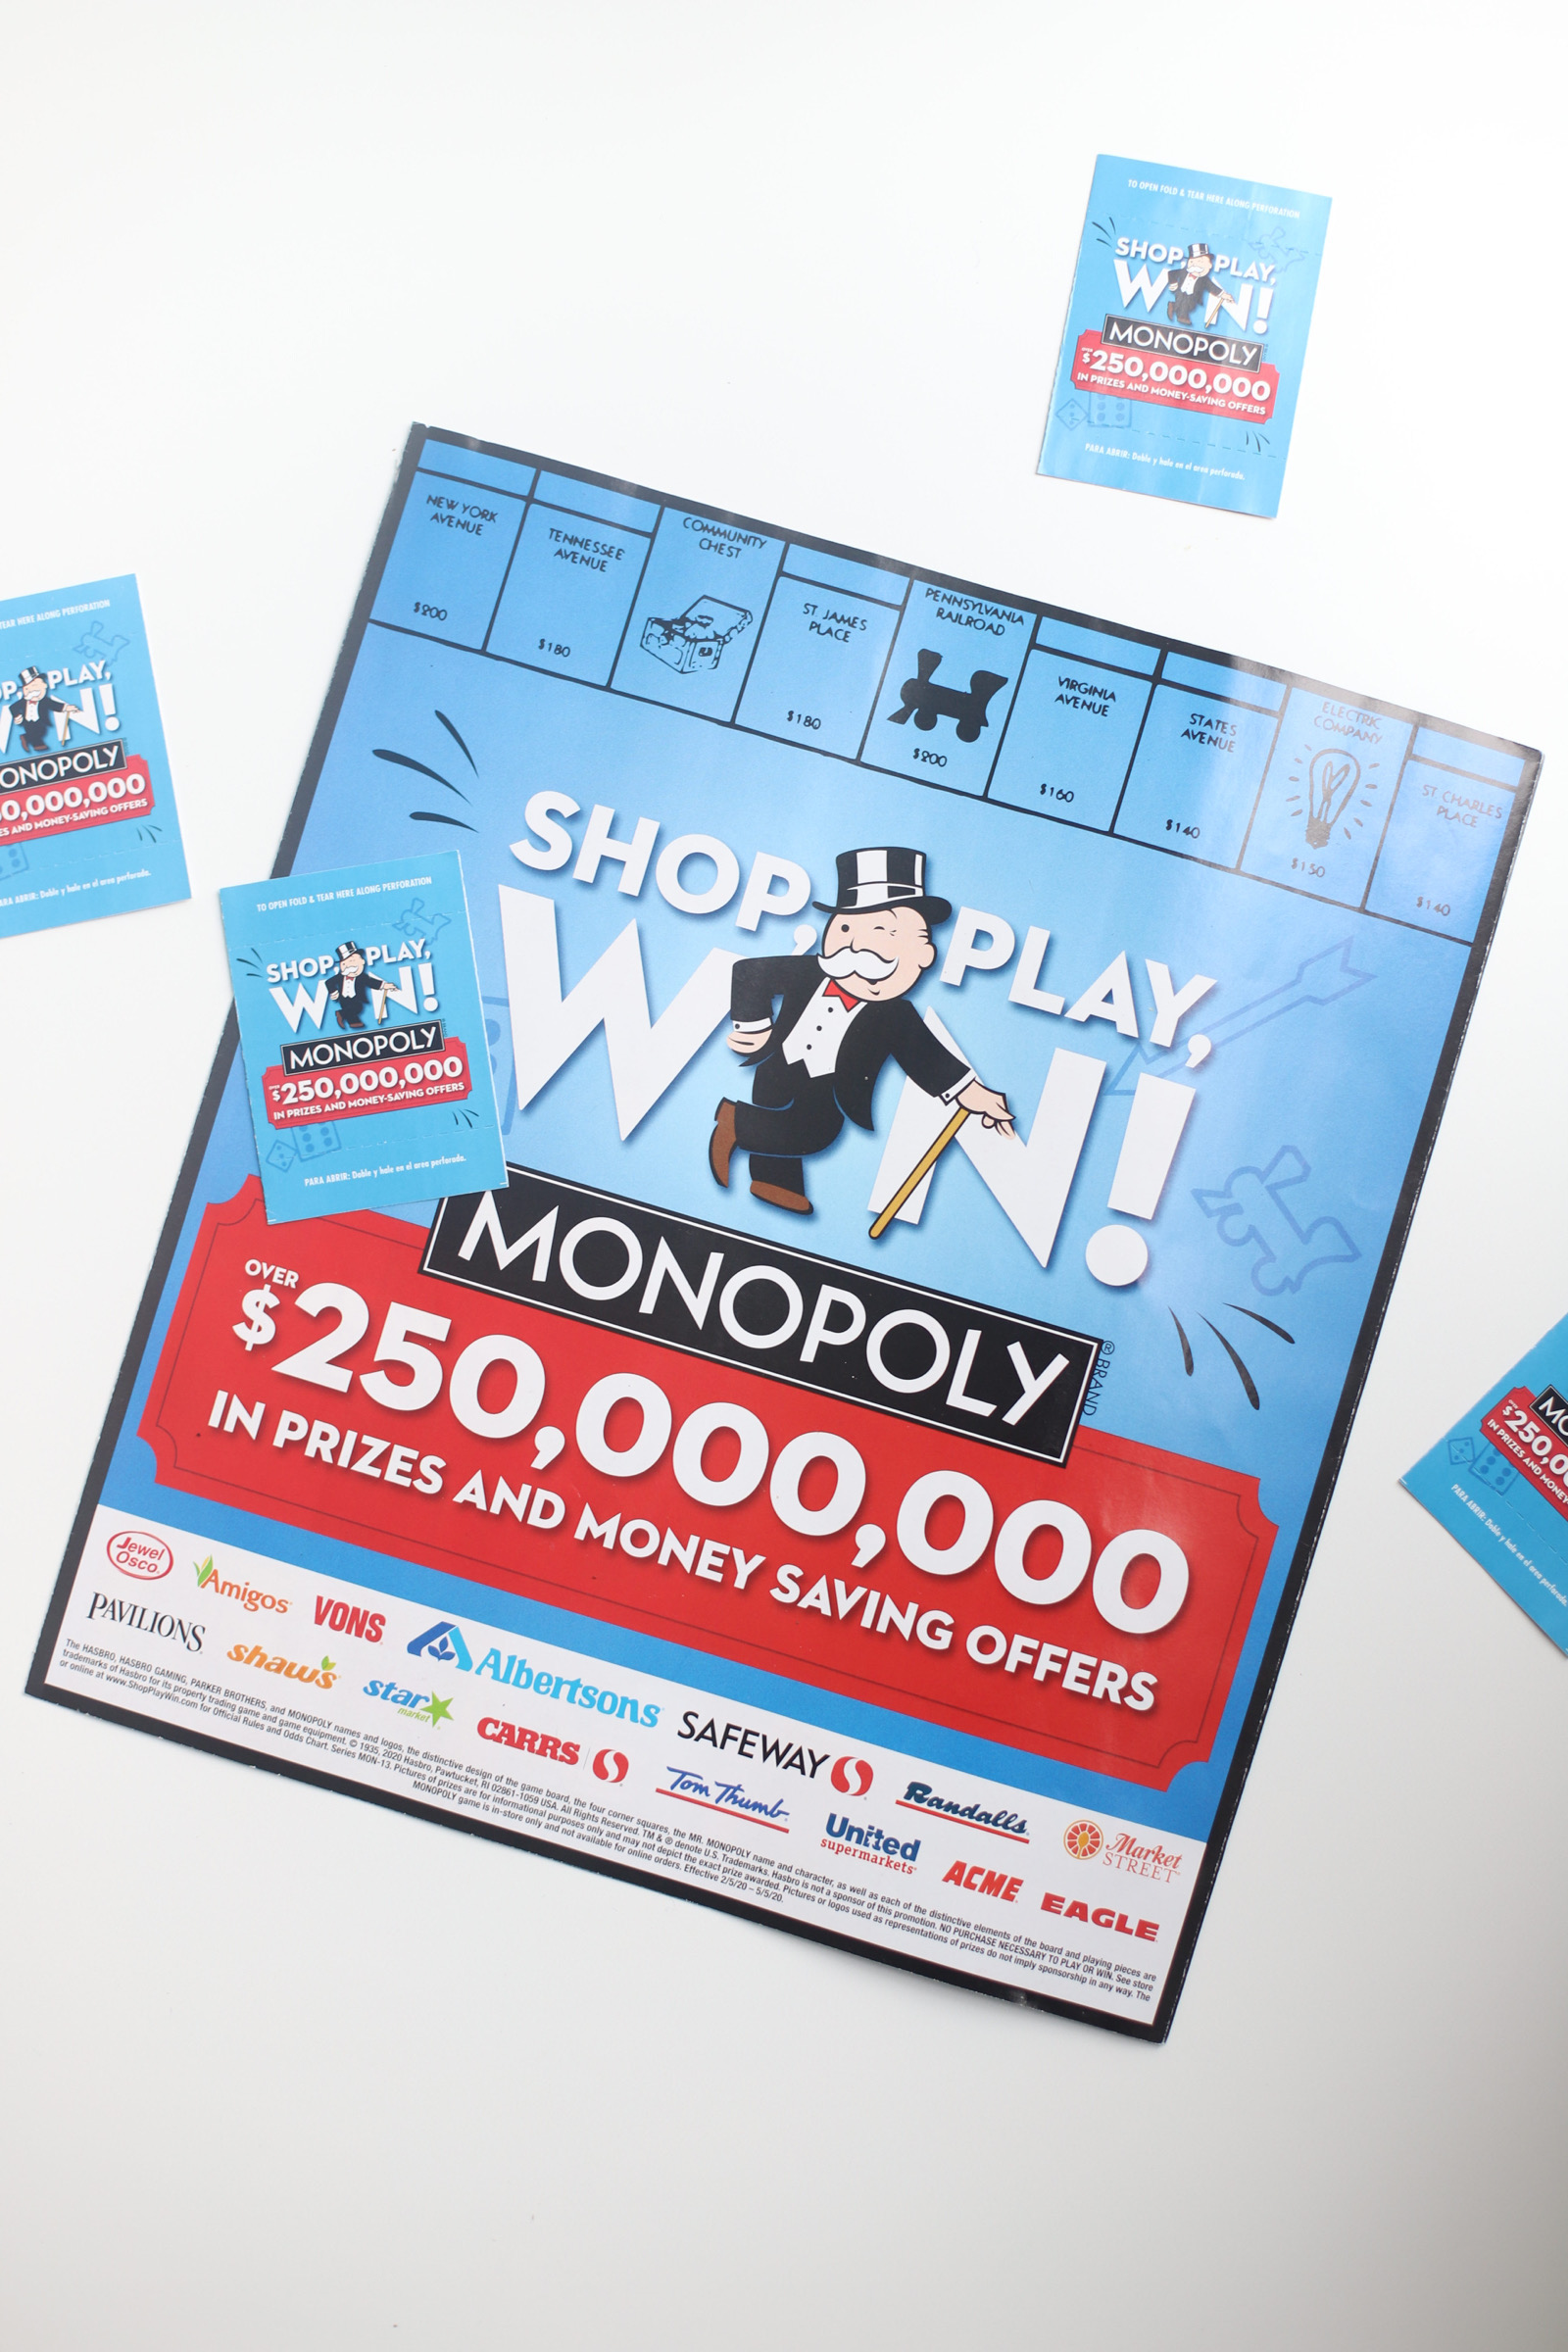 How to play SHOP, PLAY, WIN! MONOPOLY with Albertsons Stores. | glitterinc.com | @glitterinc